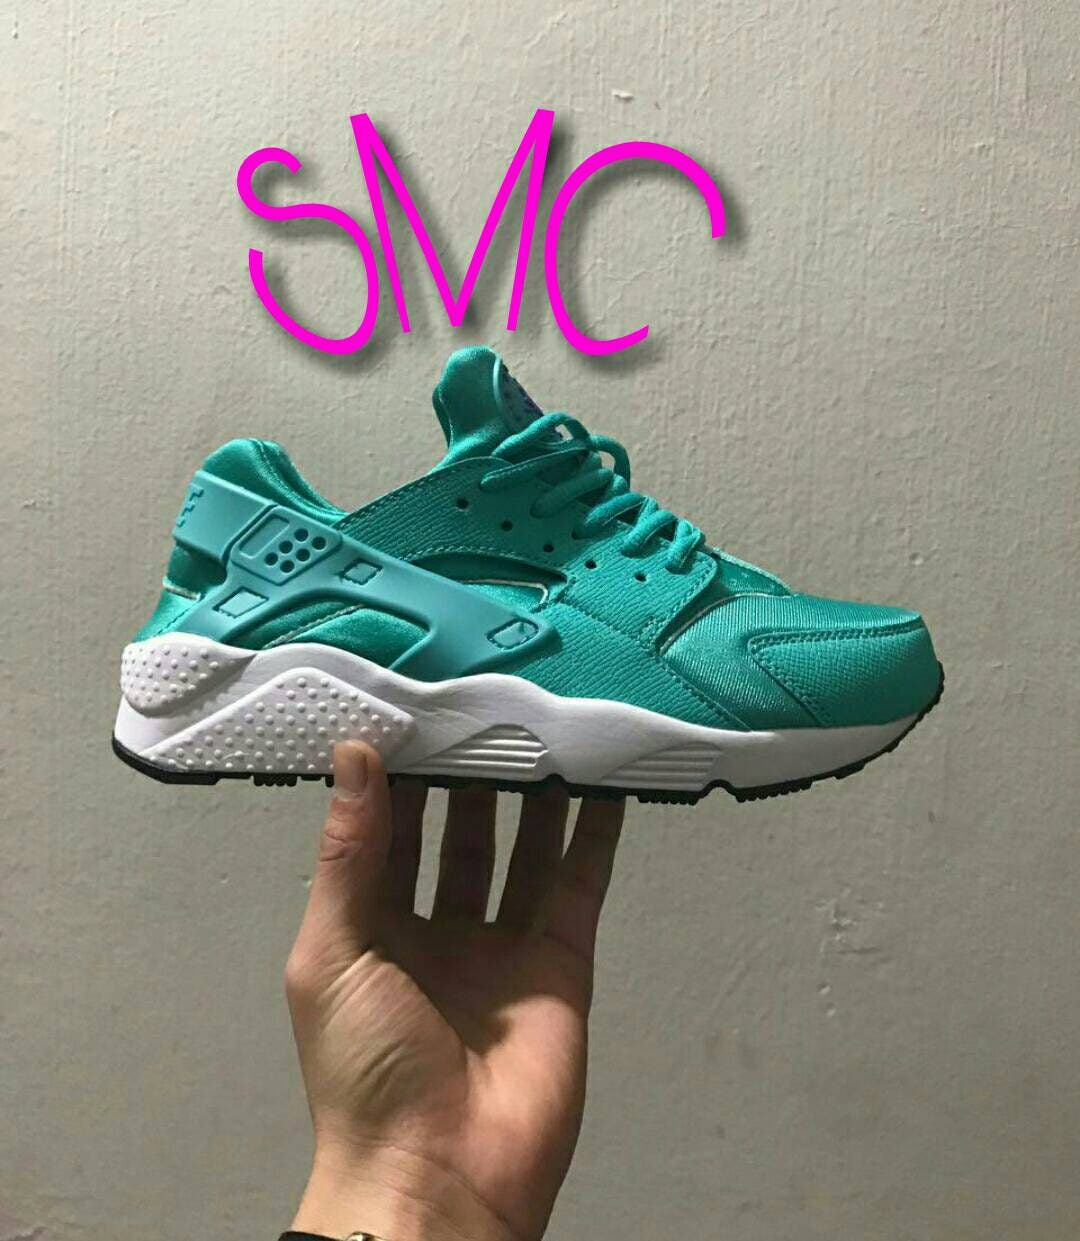 Custom Nike Air Huarache Nike Trainers Authentic Shoes Customized Sneakers Runners Mens Painted Trainers